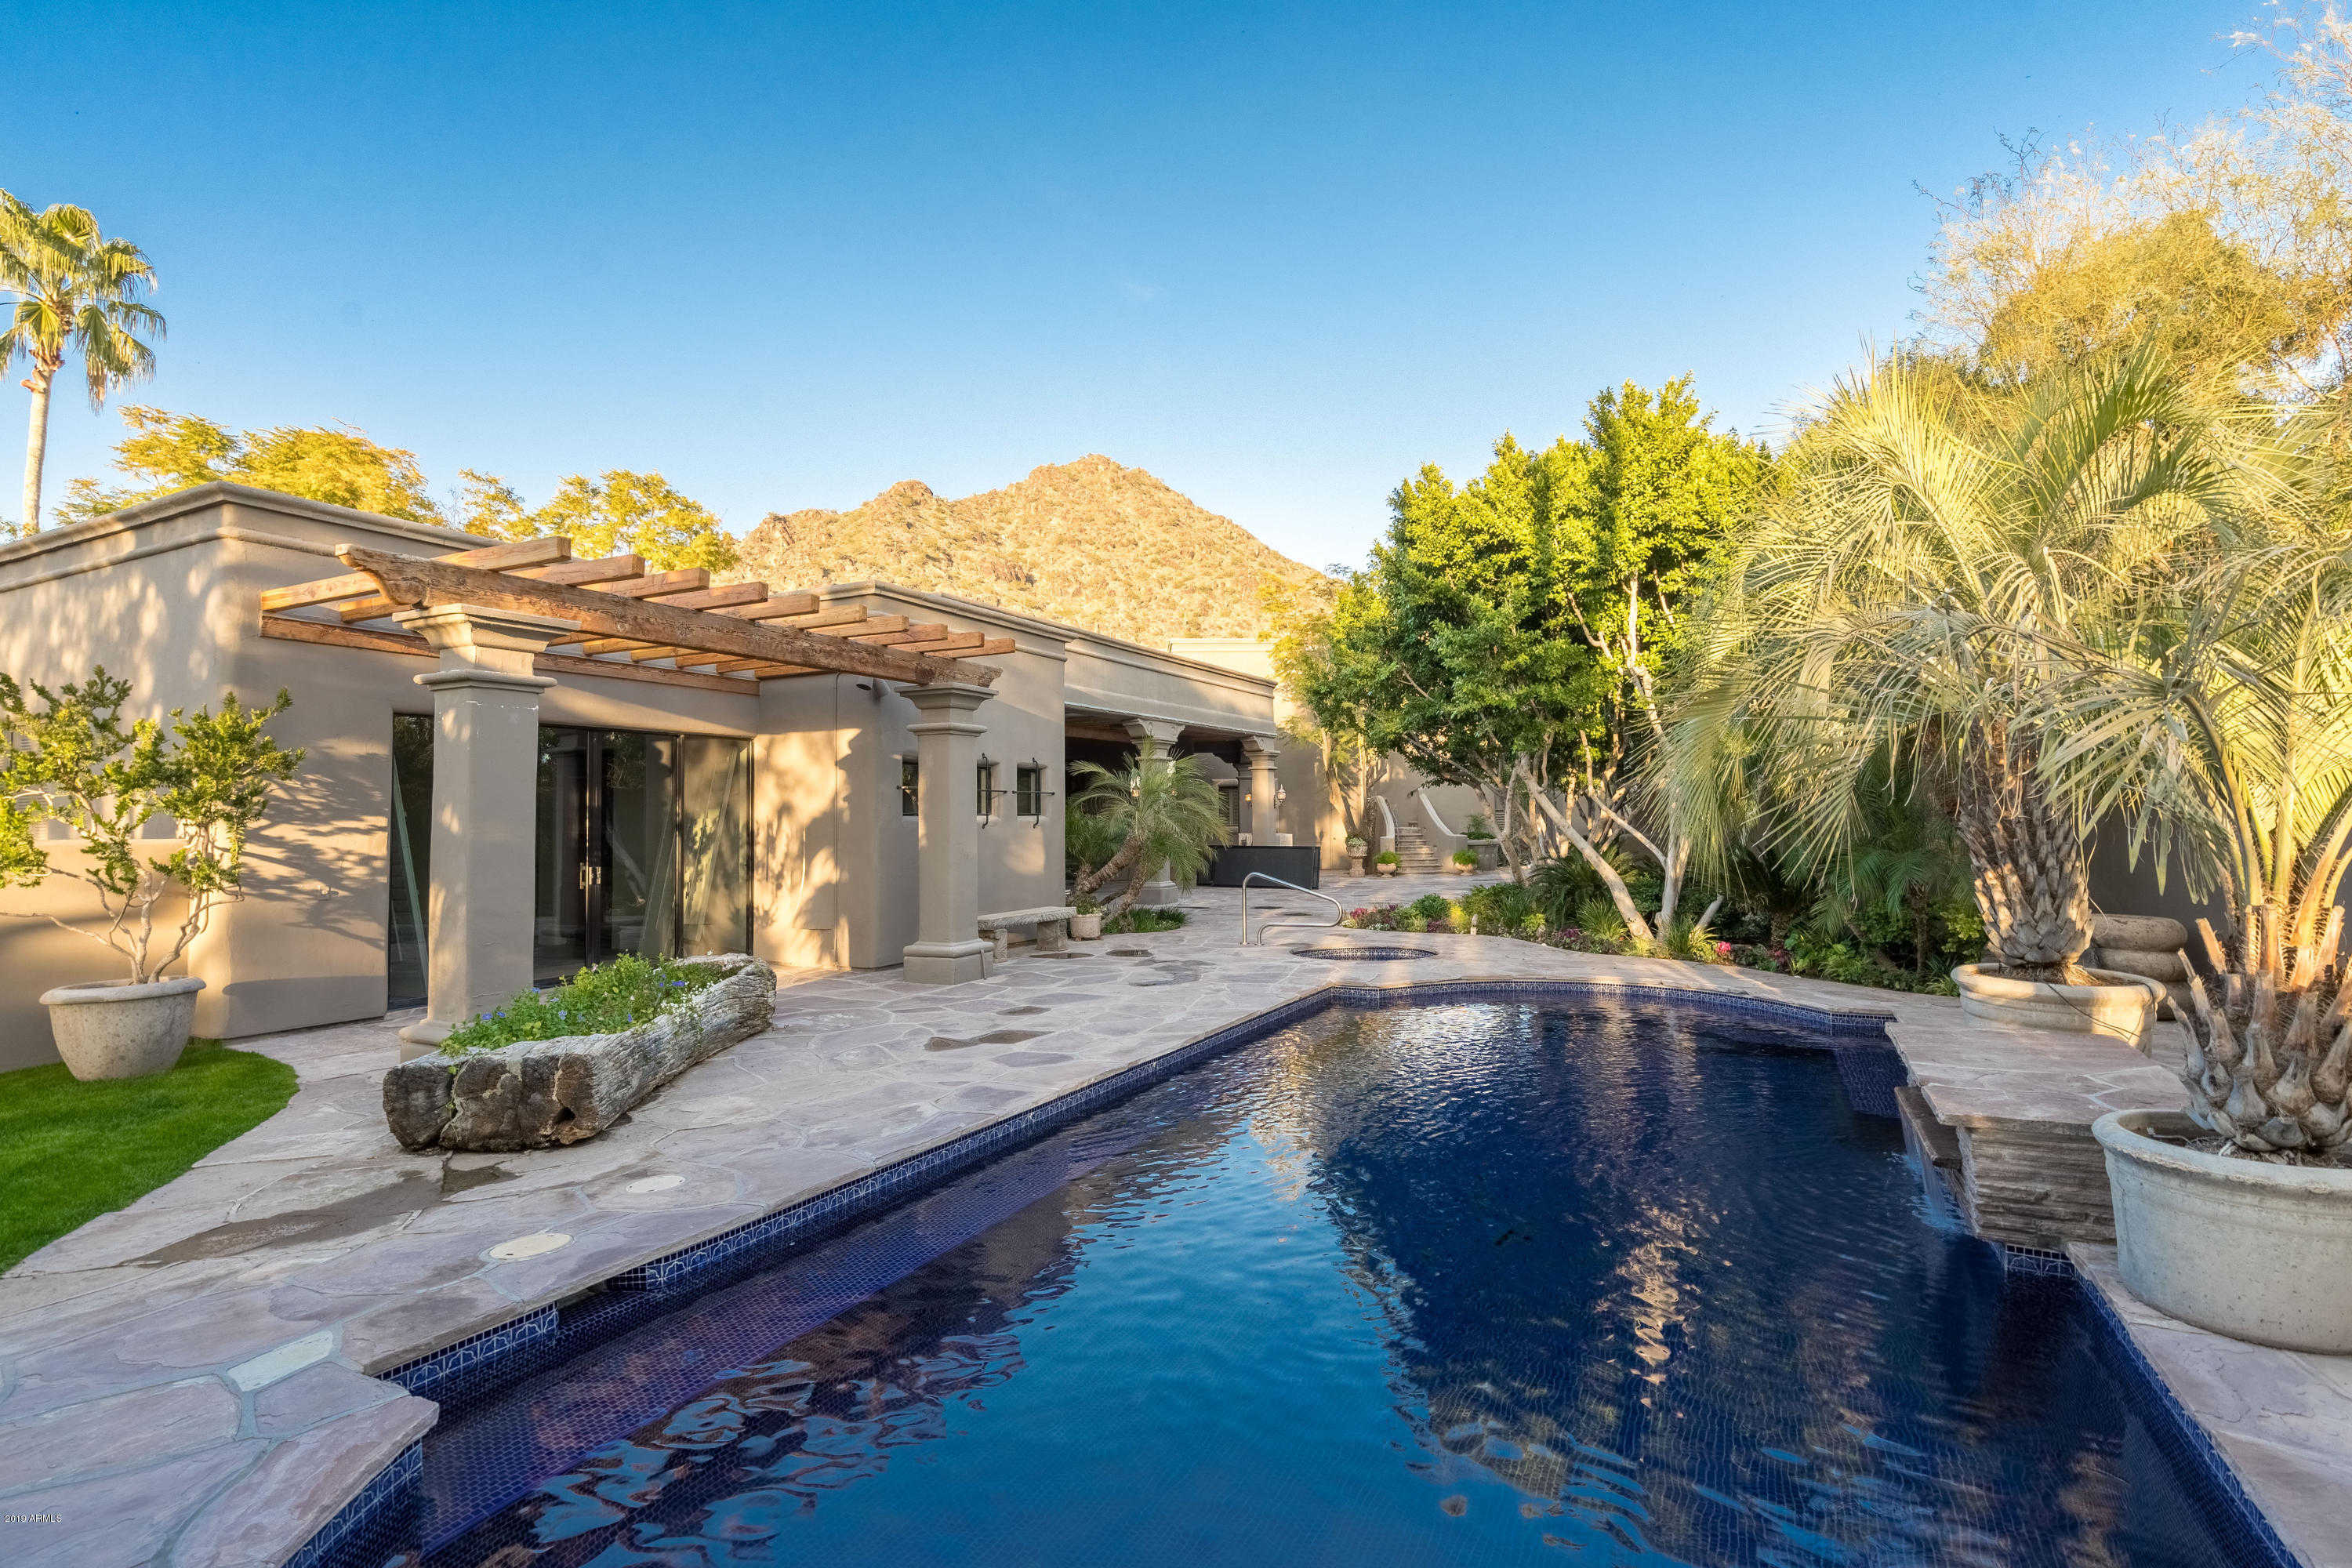 $4,200,000 - 3Br/4Ba - Home for Sale in Paradise Hills, Paradise Valley